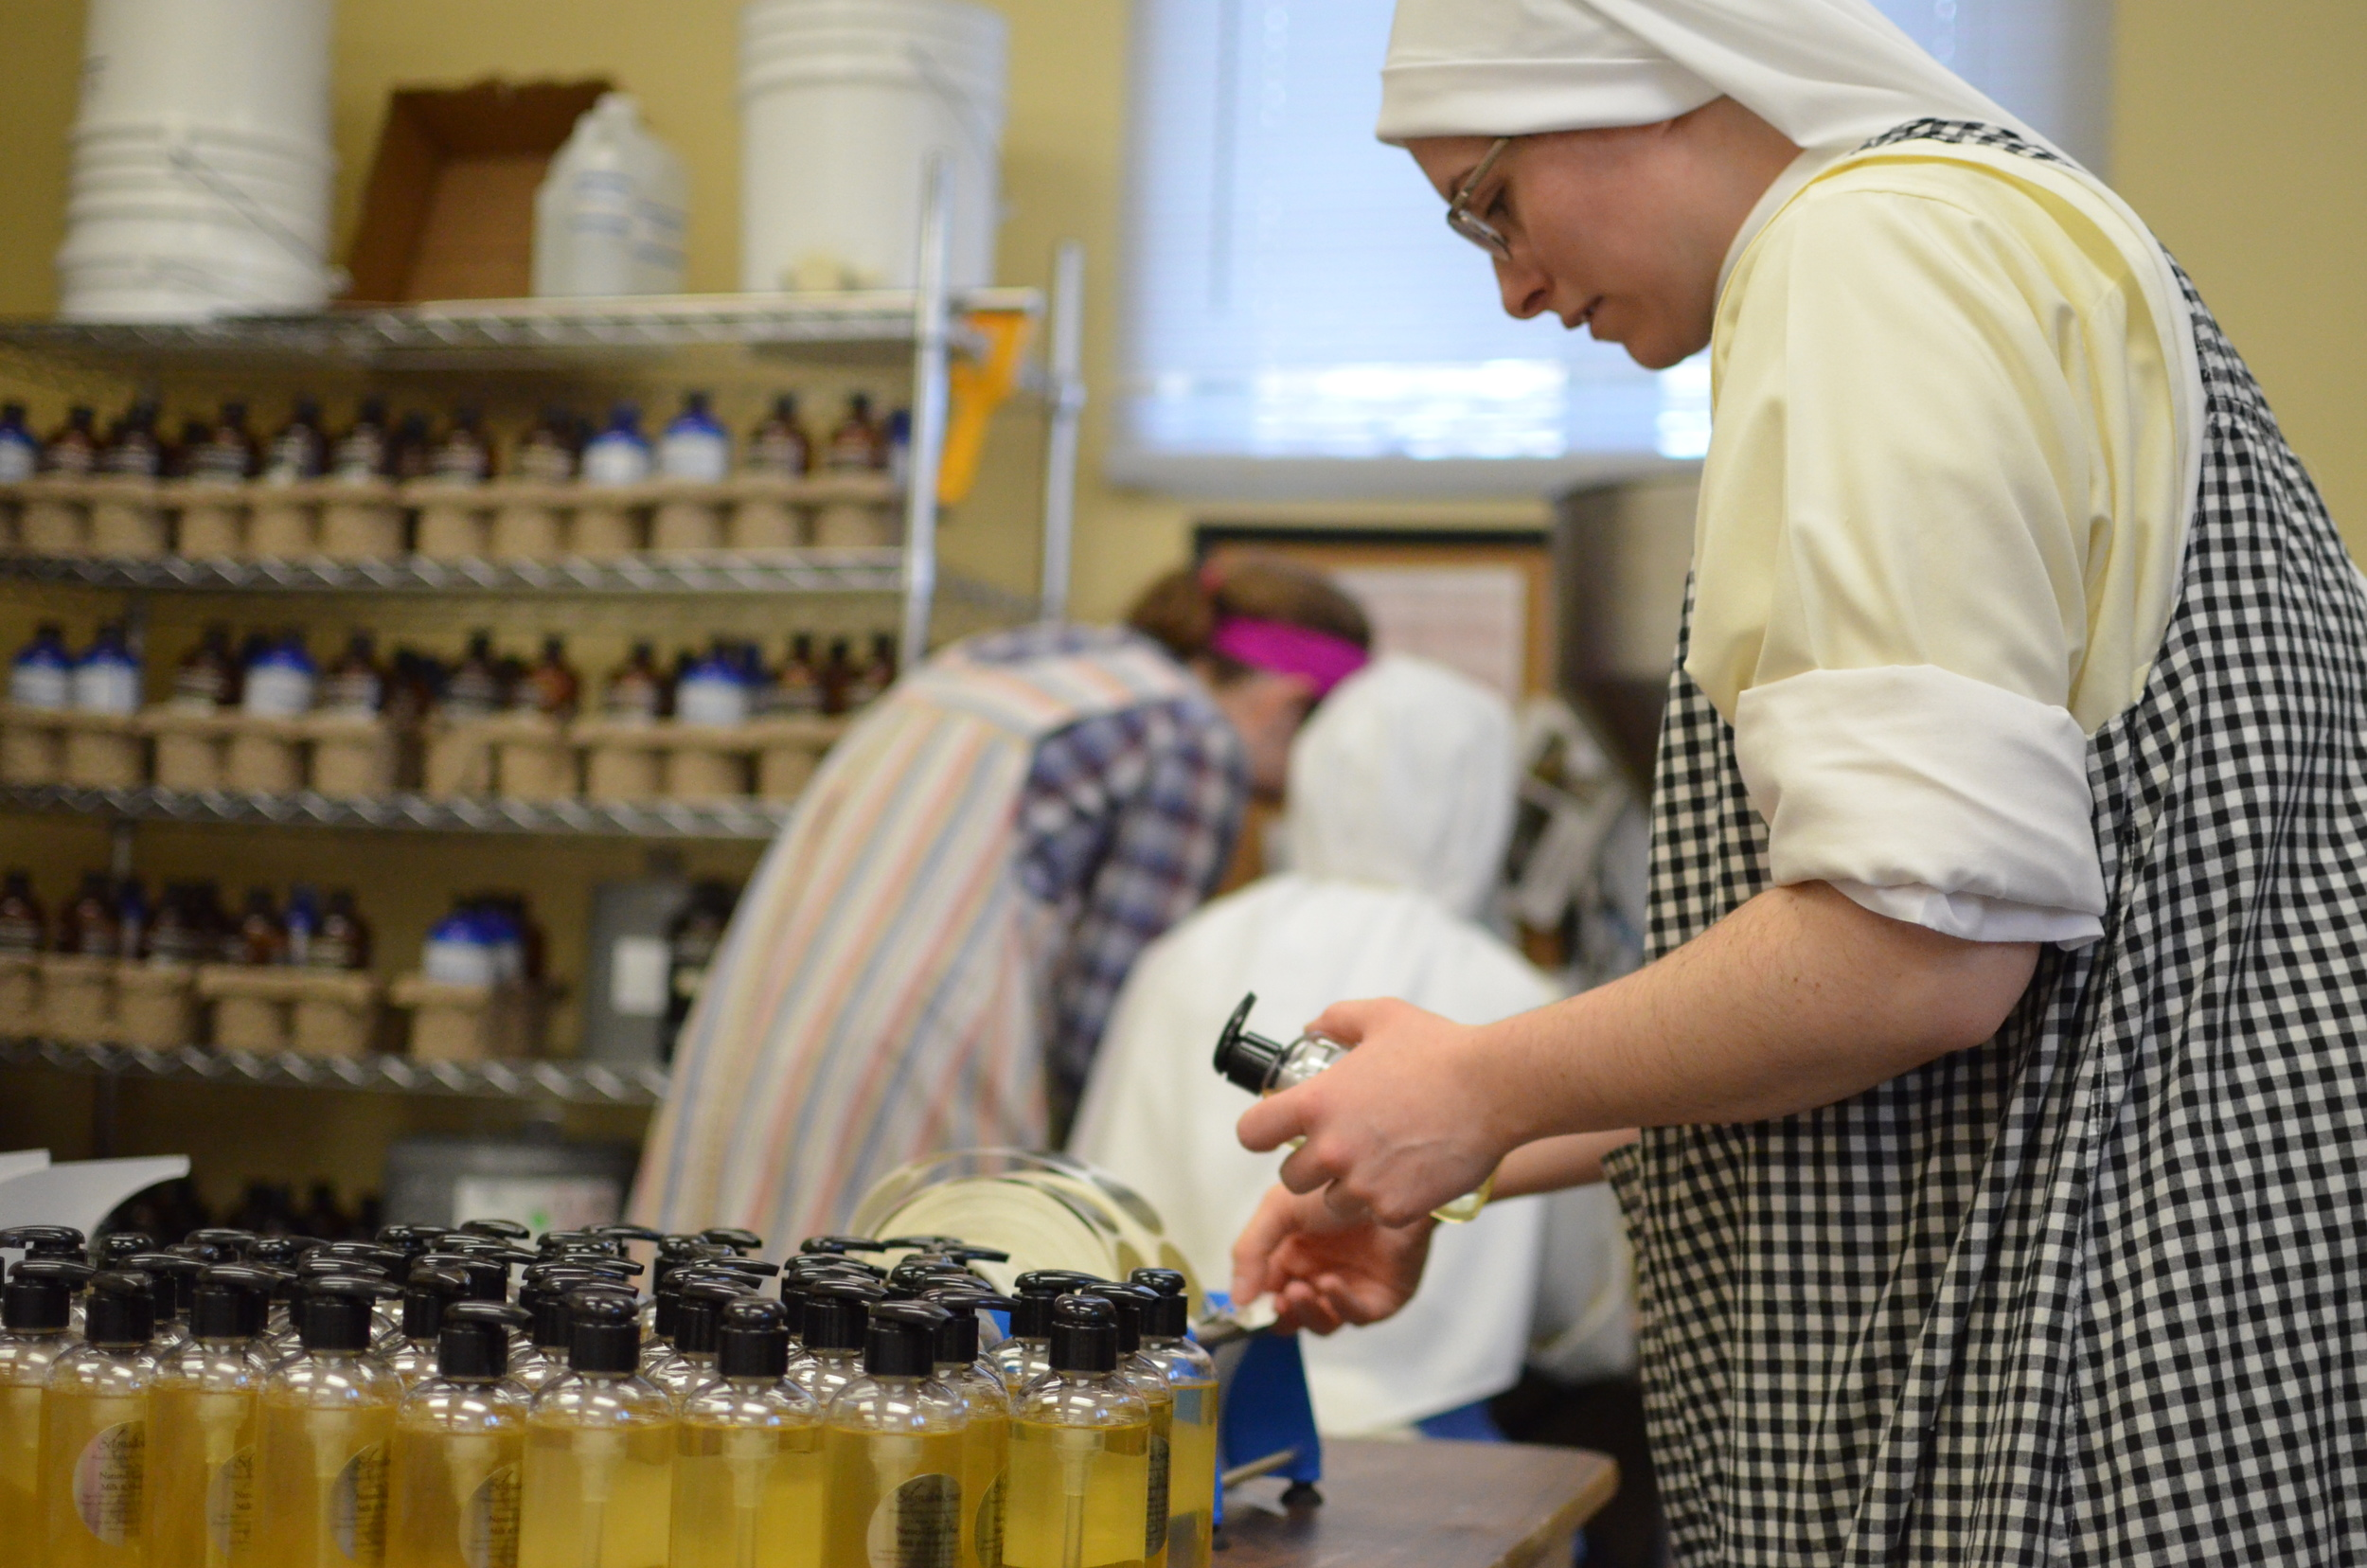 Sr. Mary Ana labels each bottle, makes sure the caps are on tight and the bottle is clean of any residue!